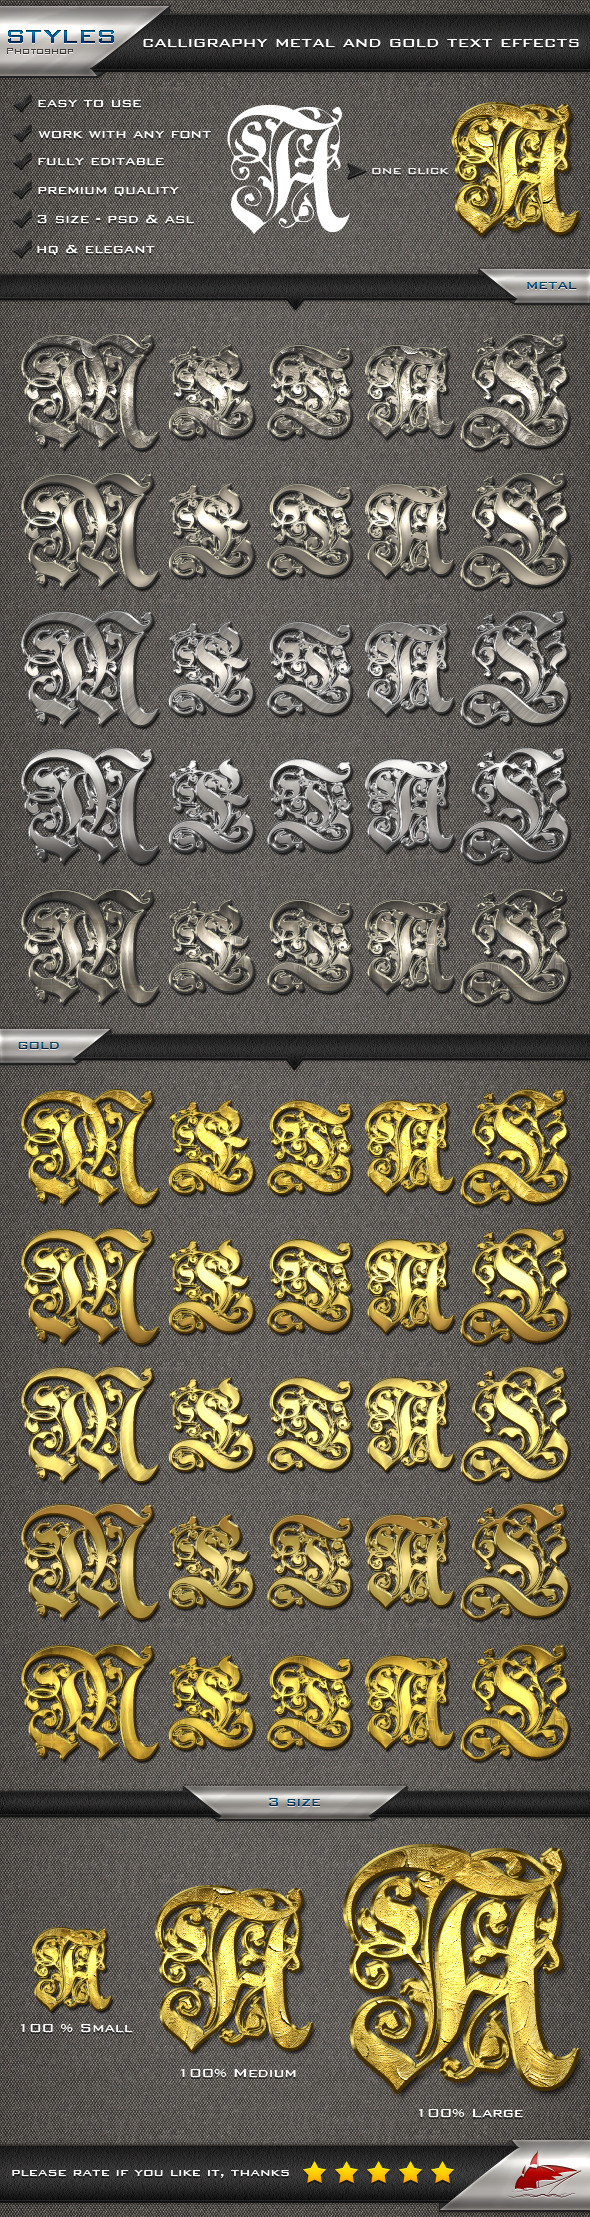 Calligraphy Metal and Gold Text Effects - Styles Photoshop